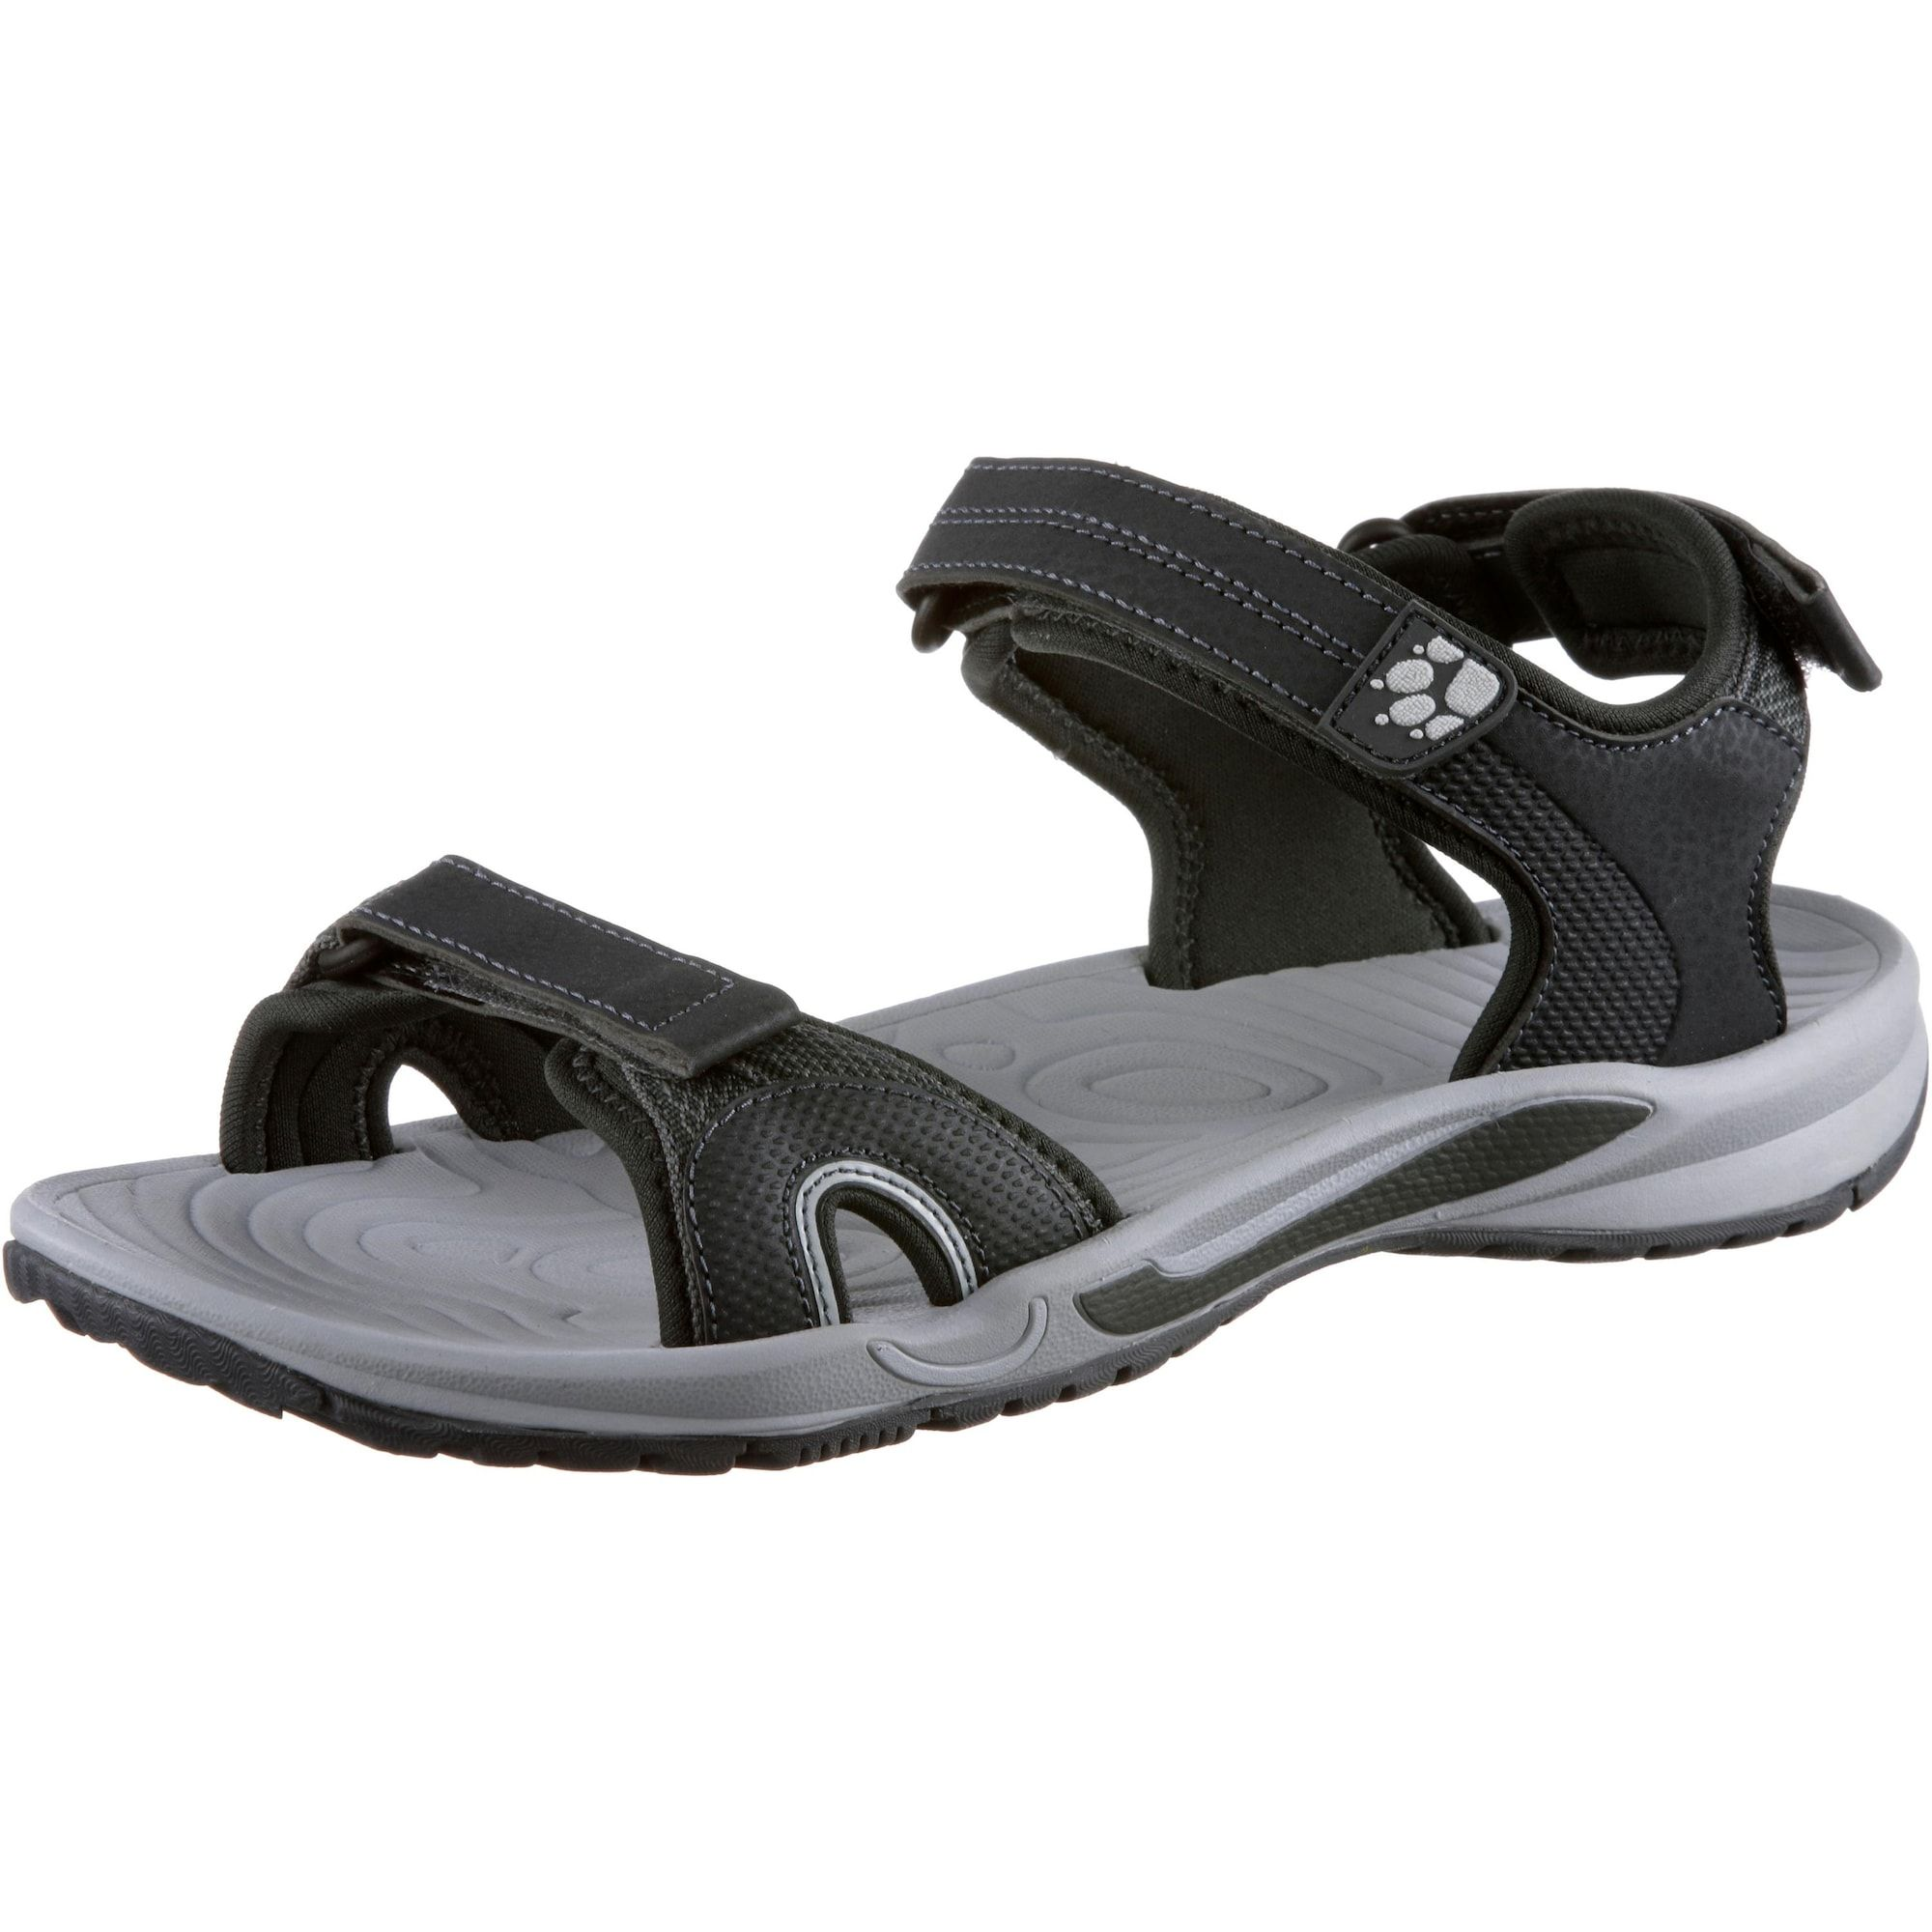 Outdoorsandalen ´Lakewood Cruise´